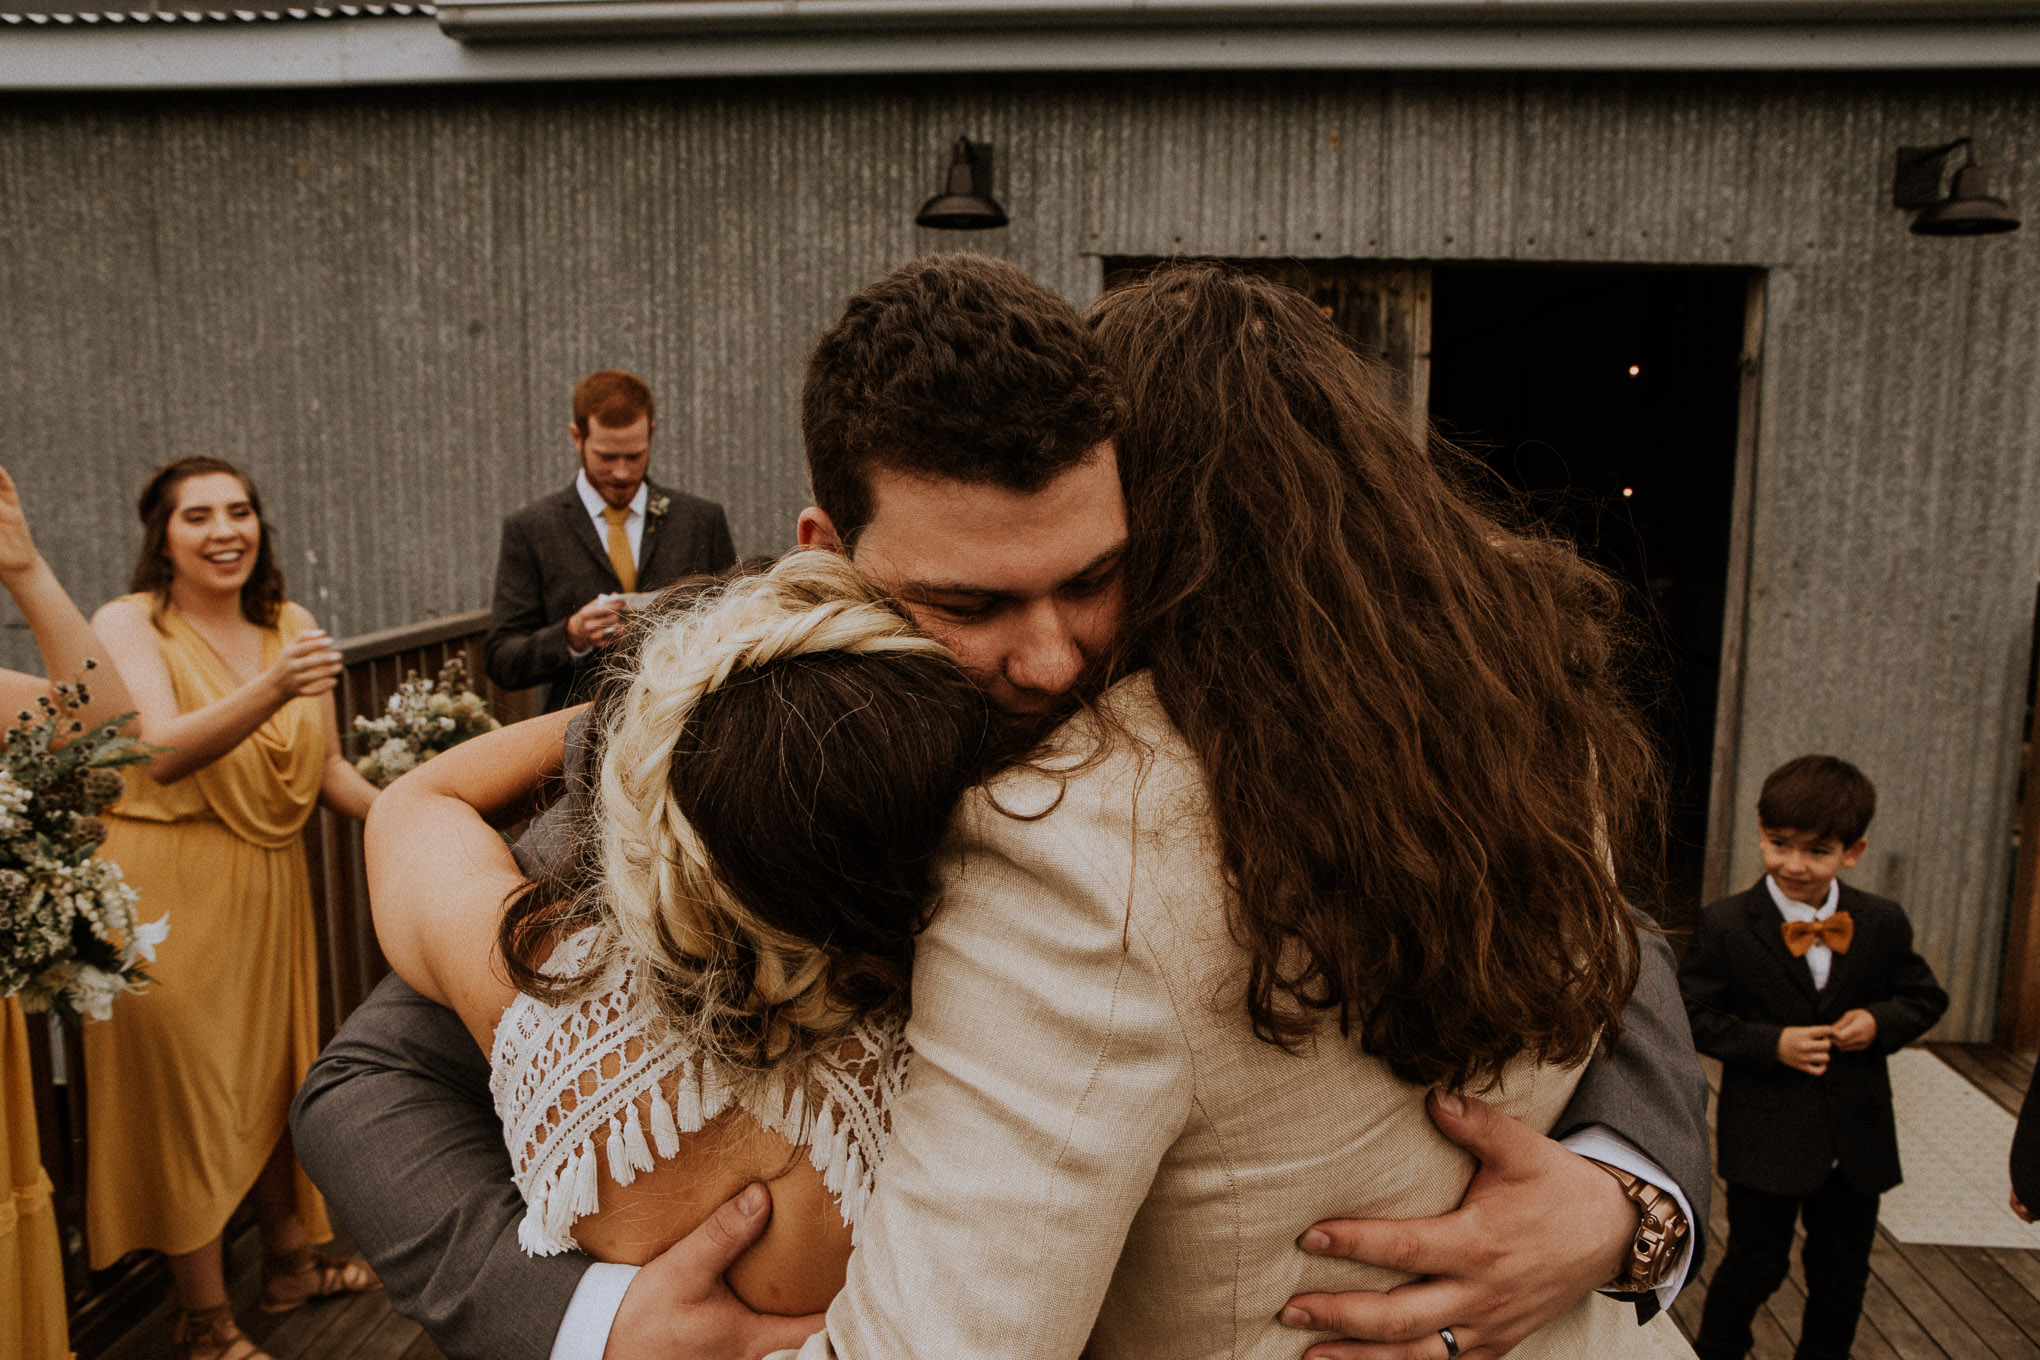 Guests' emotional reactions after wedding ceremony